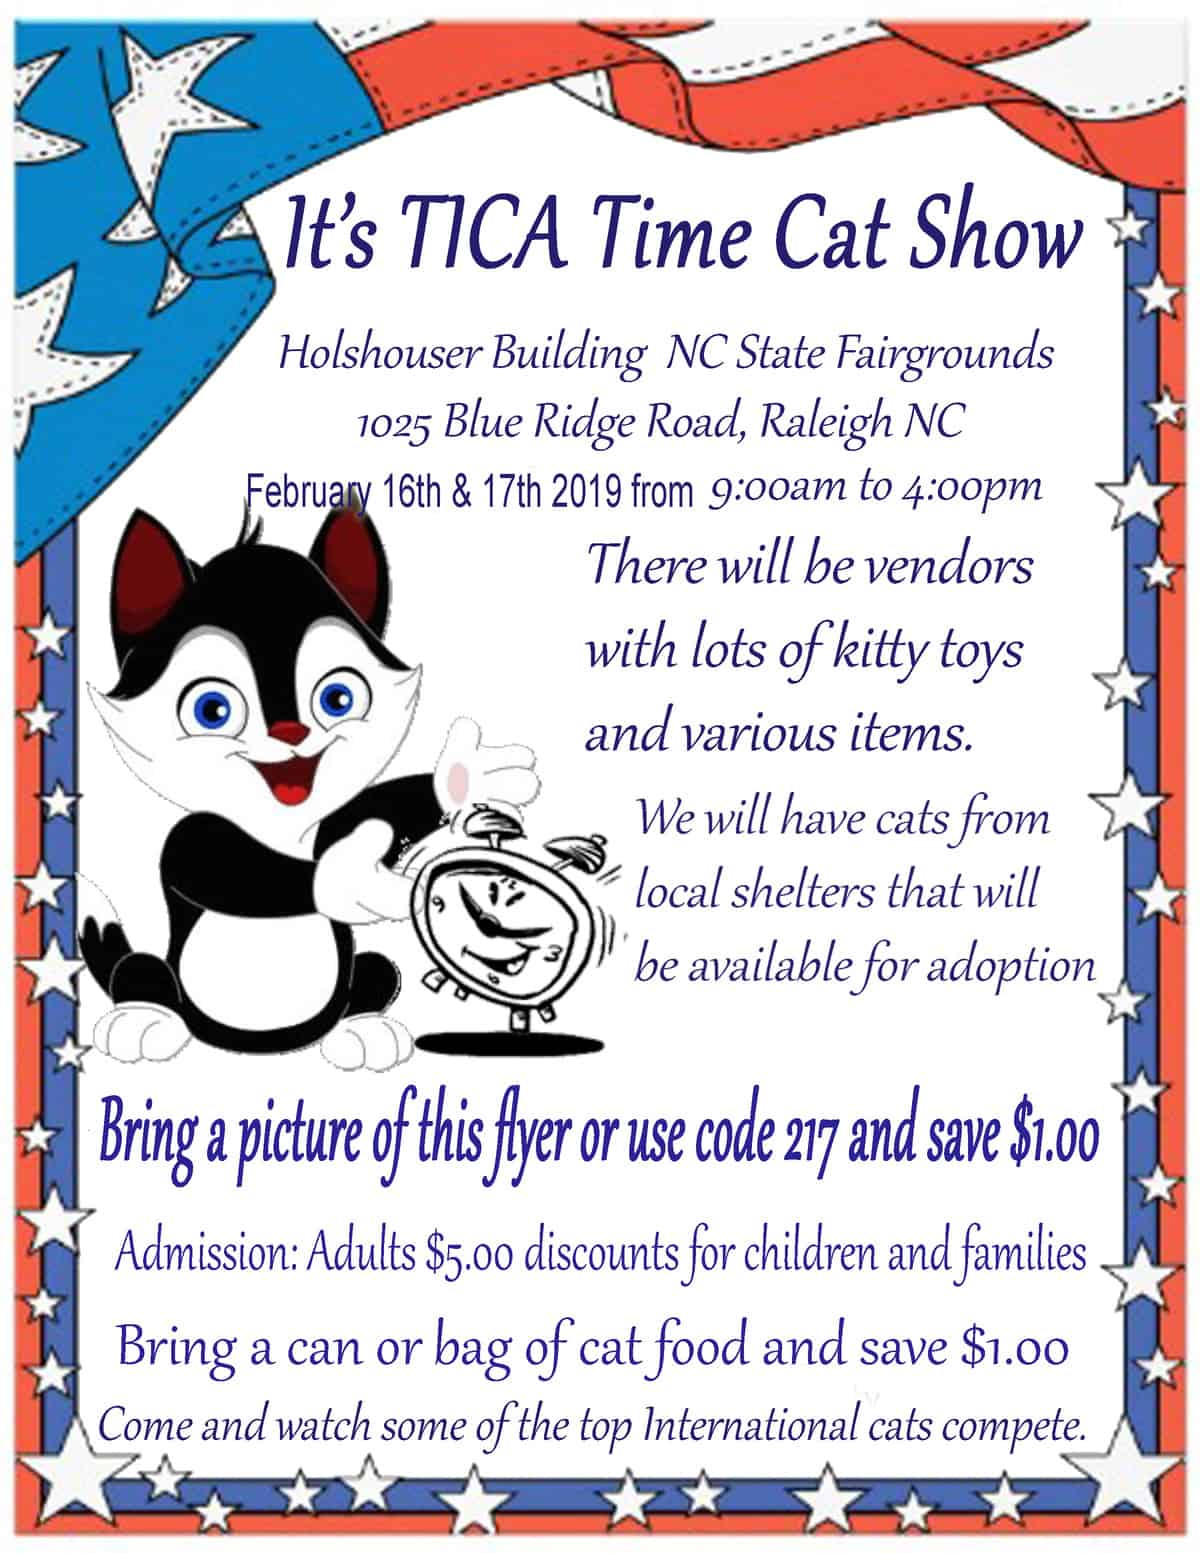 TICA Time Cat Show - Triangle on the Cheap